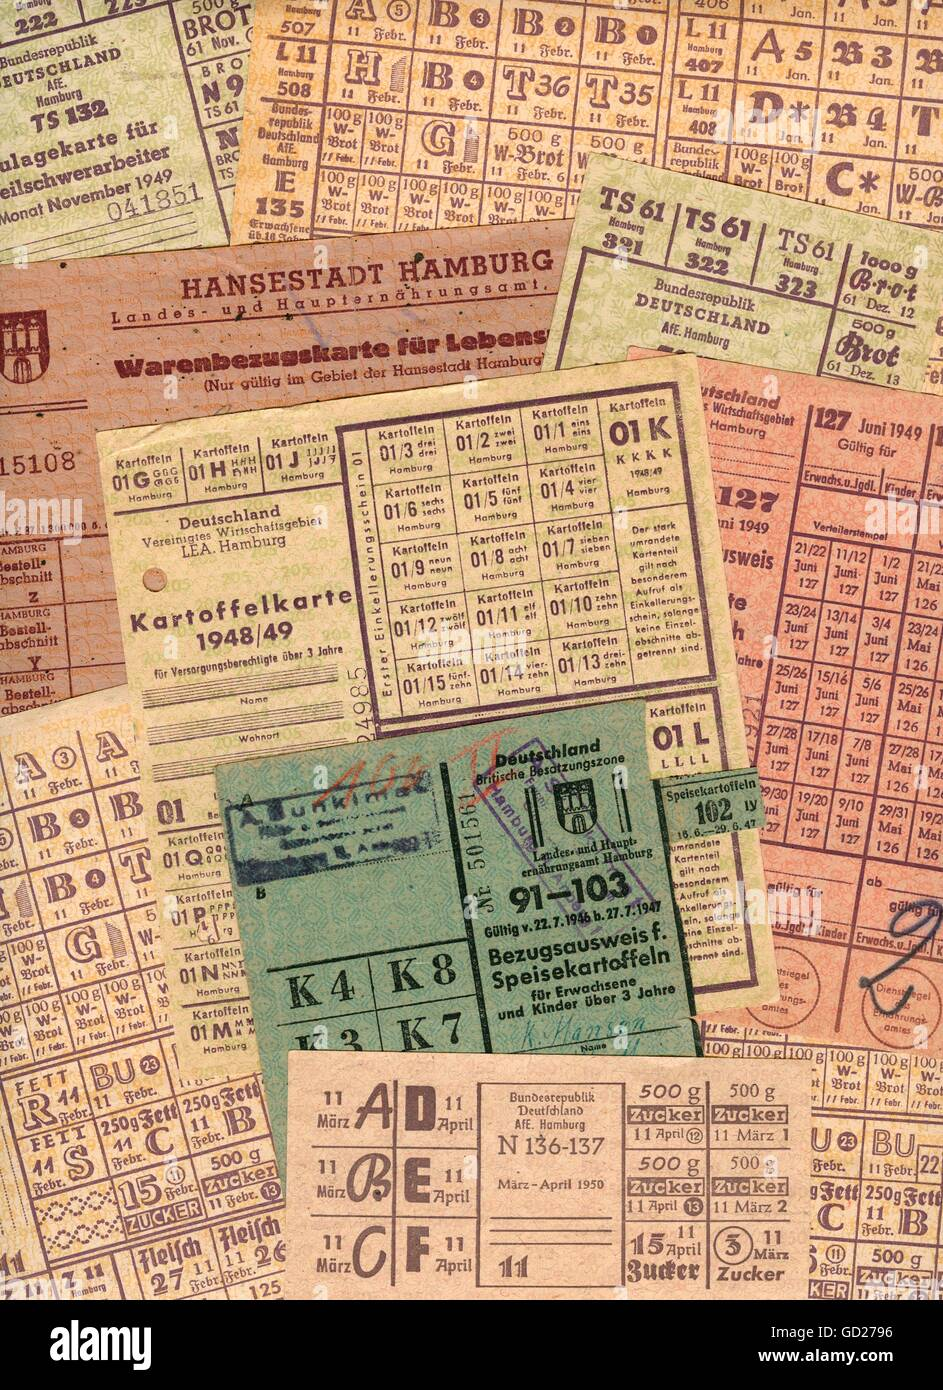 post war period, economy, Germany, Hamburg, postwar era, the Second World War, different food ration cards, issued - Stock Image